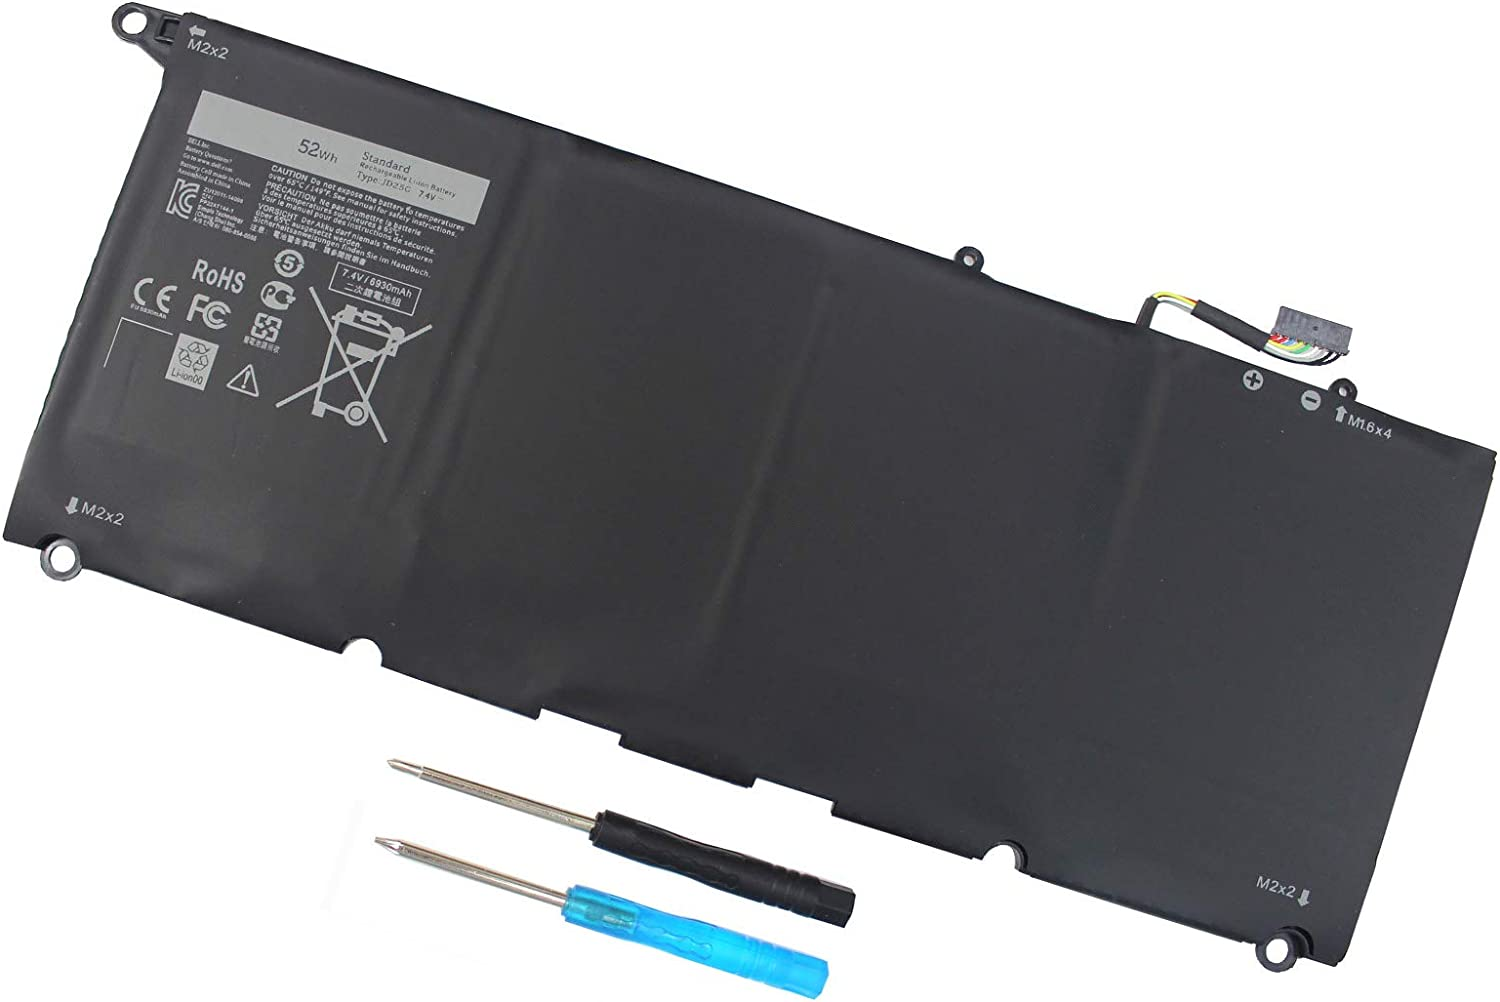 JD25G Laptop Battery for Dell XPS 13 9343 13 9350 Ultrabook P54G P54G001 P54G002 RWT1R 0RWT1R 0DRRP 0N7T6 DIN02 JHXPY 0JHXPY 0N7T6 00N7T6